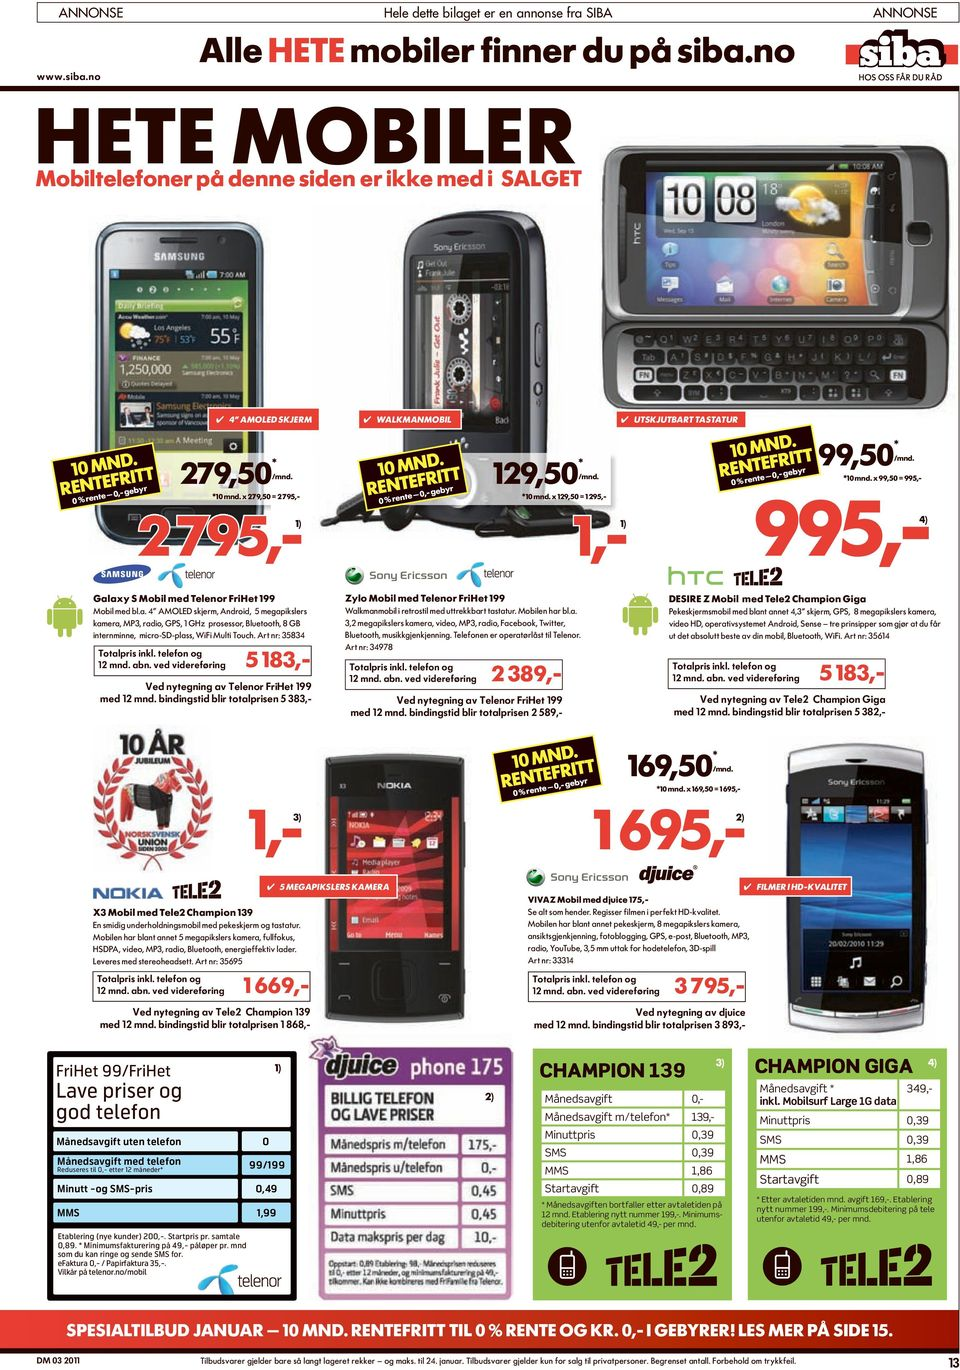 = 995,- 1,-1) 995,-4) galaxy S mobil med telenor frihet 199 Mobil med bl.a. 4 AMOLED skjerm, Android, 5 megapikslers kamera, MP3, radio, GPS, 1 GHz prosessor, Bluetooth, 8 GB internminne, micro-sd-plass, WiFi Multi Touch.